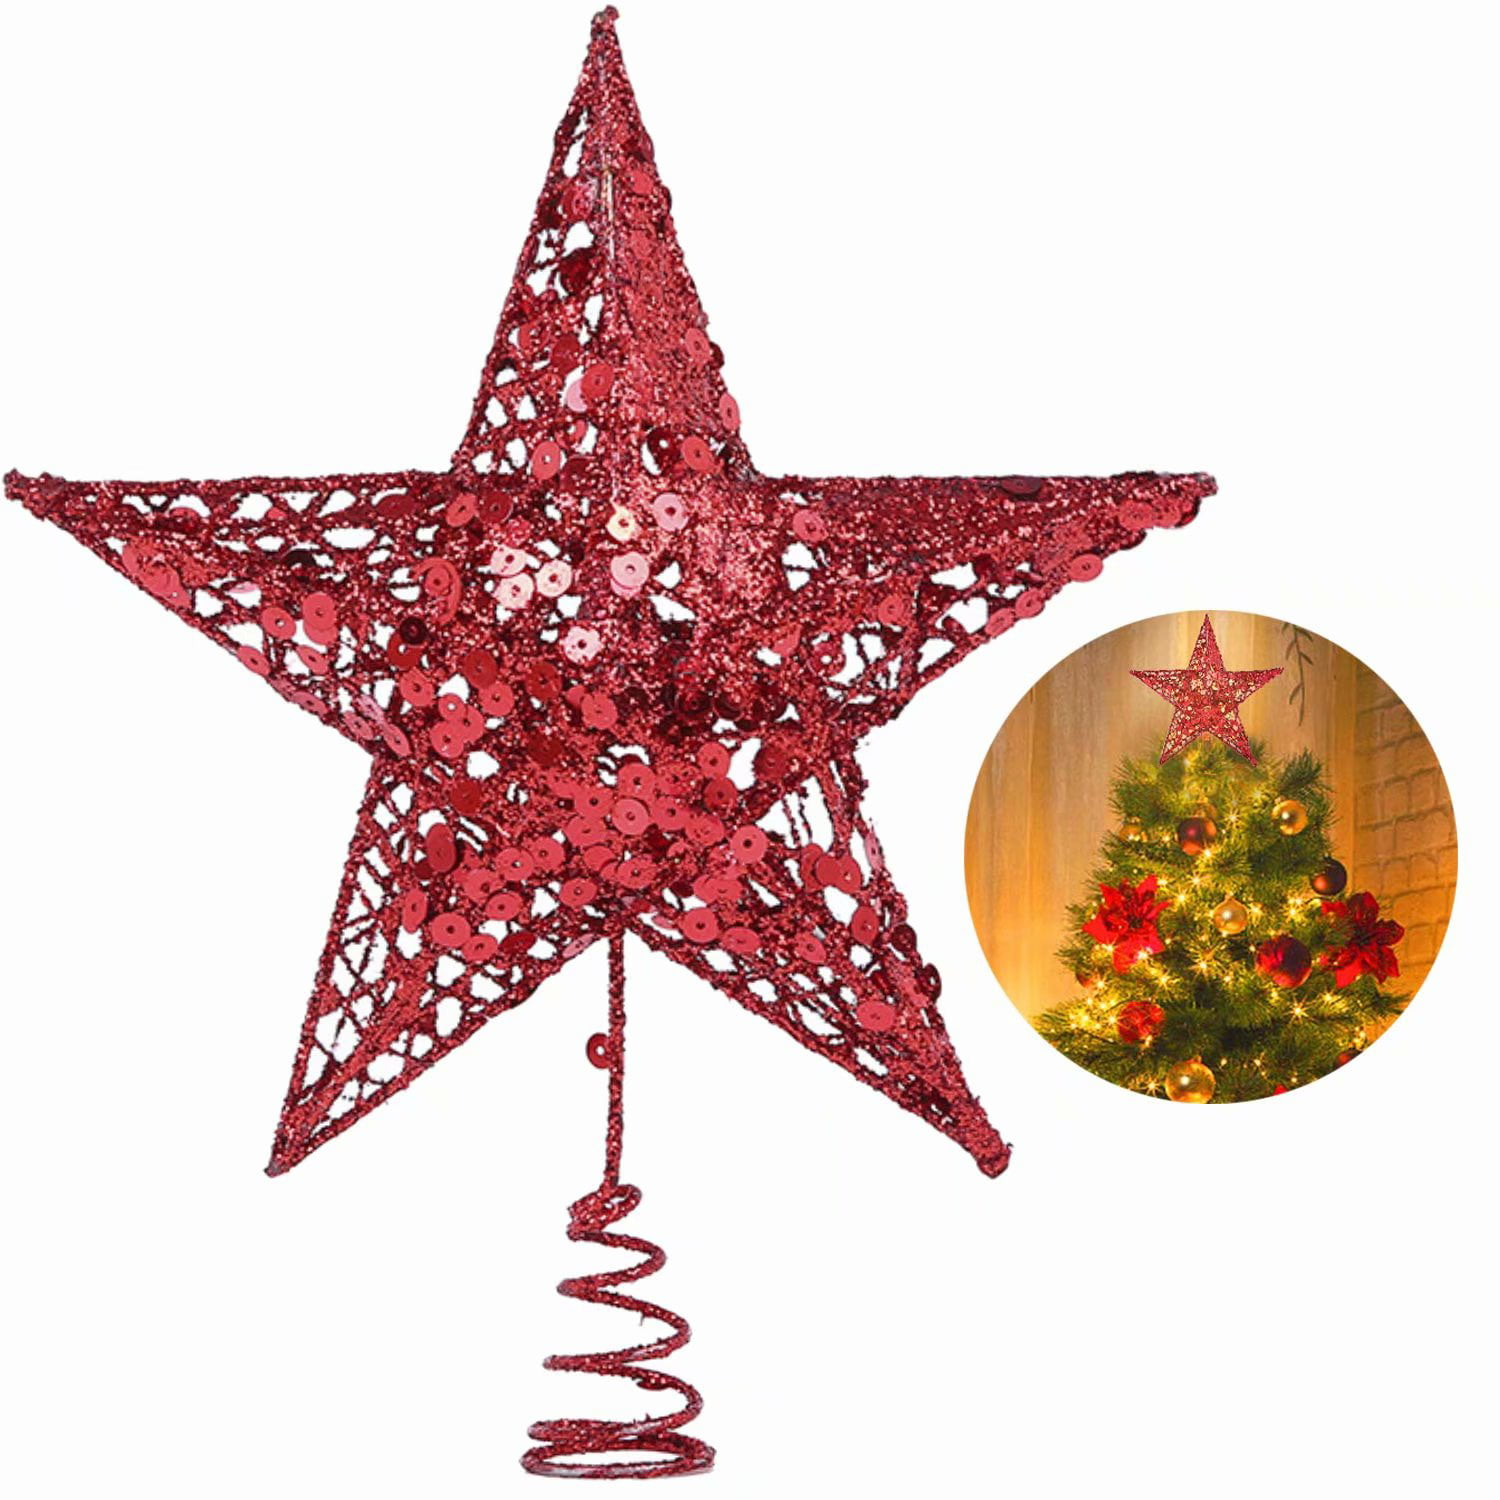 Christmas Tree Star Topper 9 8in Xmas Tree Topper Star Christmas Decoration Glittered Tree Top Star For Christmas Tree Ornament Indoor Party Home Decoration Red Walmart Com Walmart Com